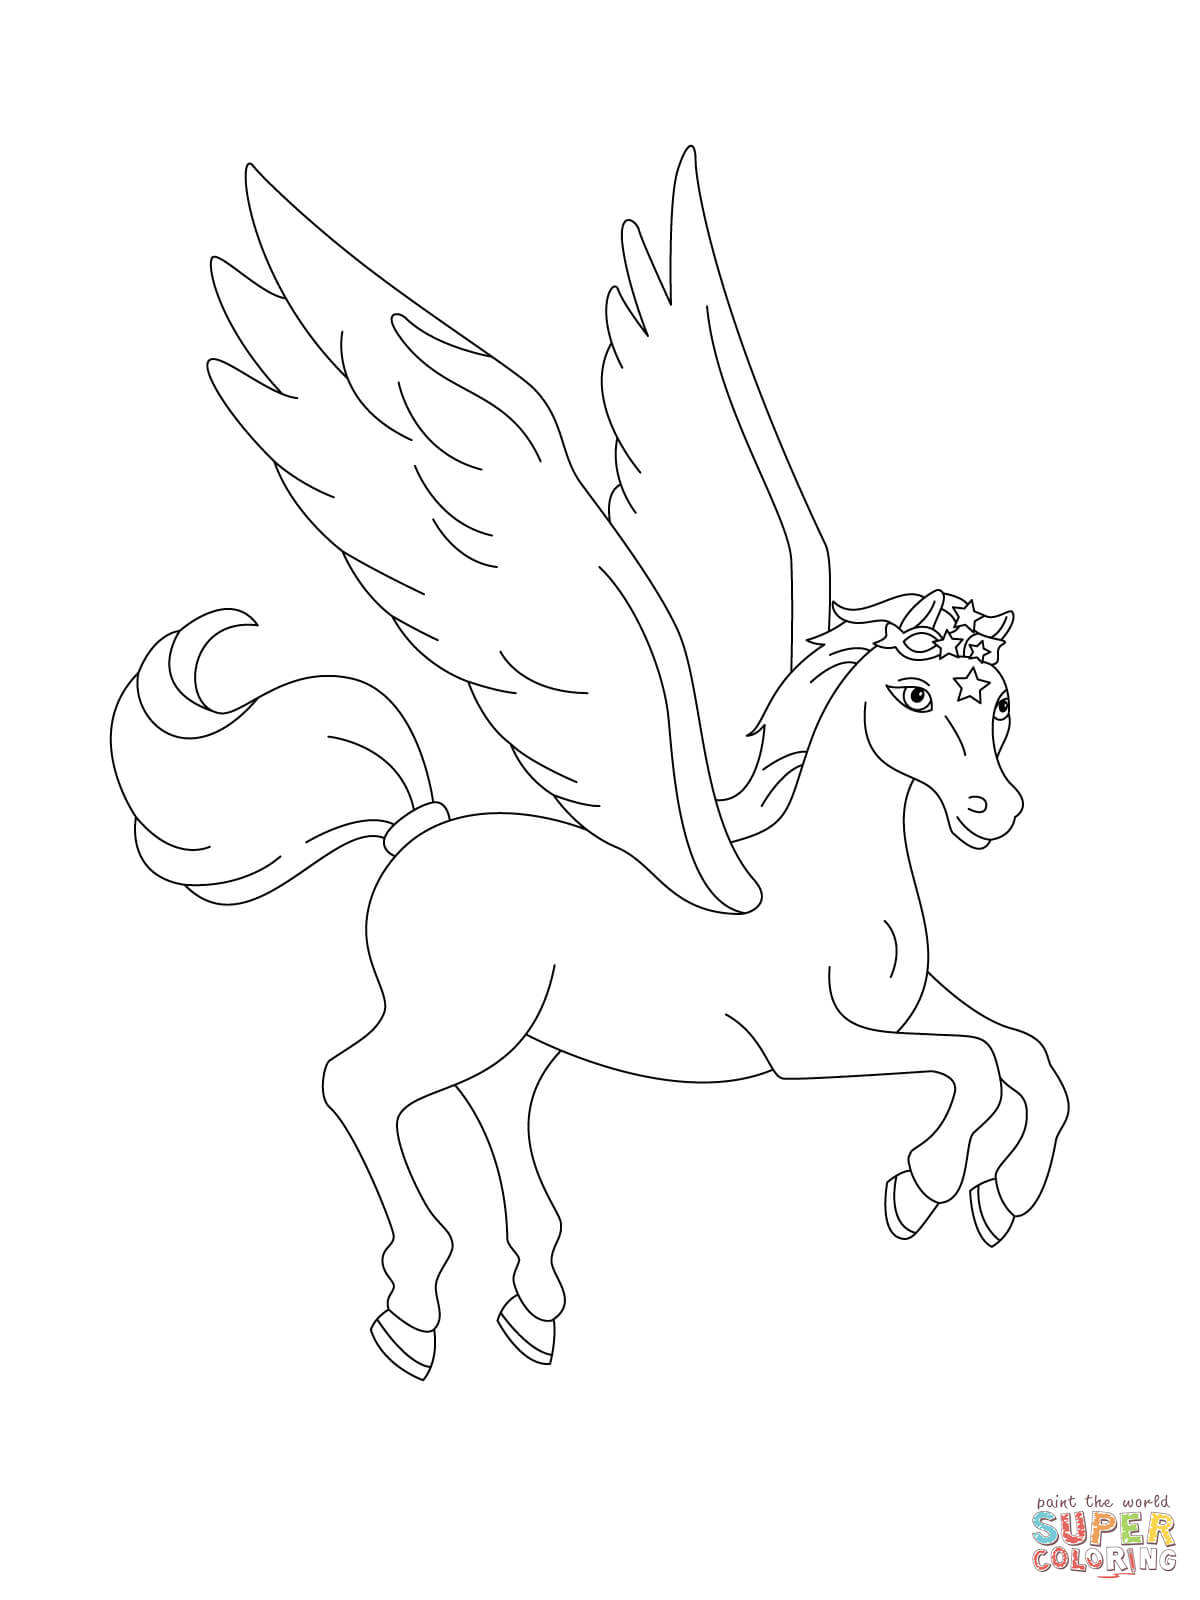 Pegasus Flying Drawing at GetDrawings.com | Free for personal use ...